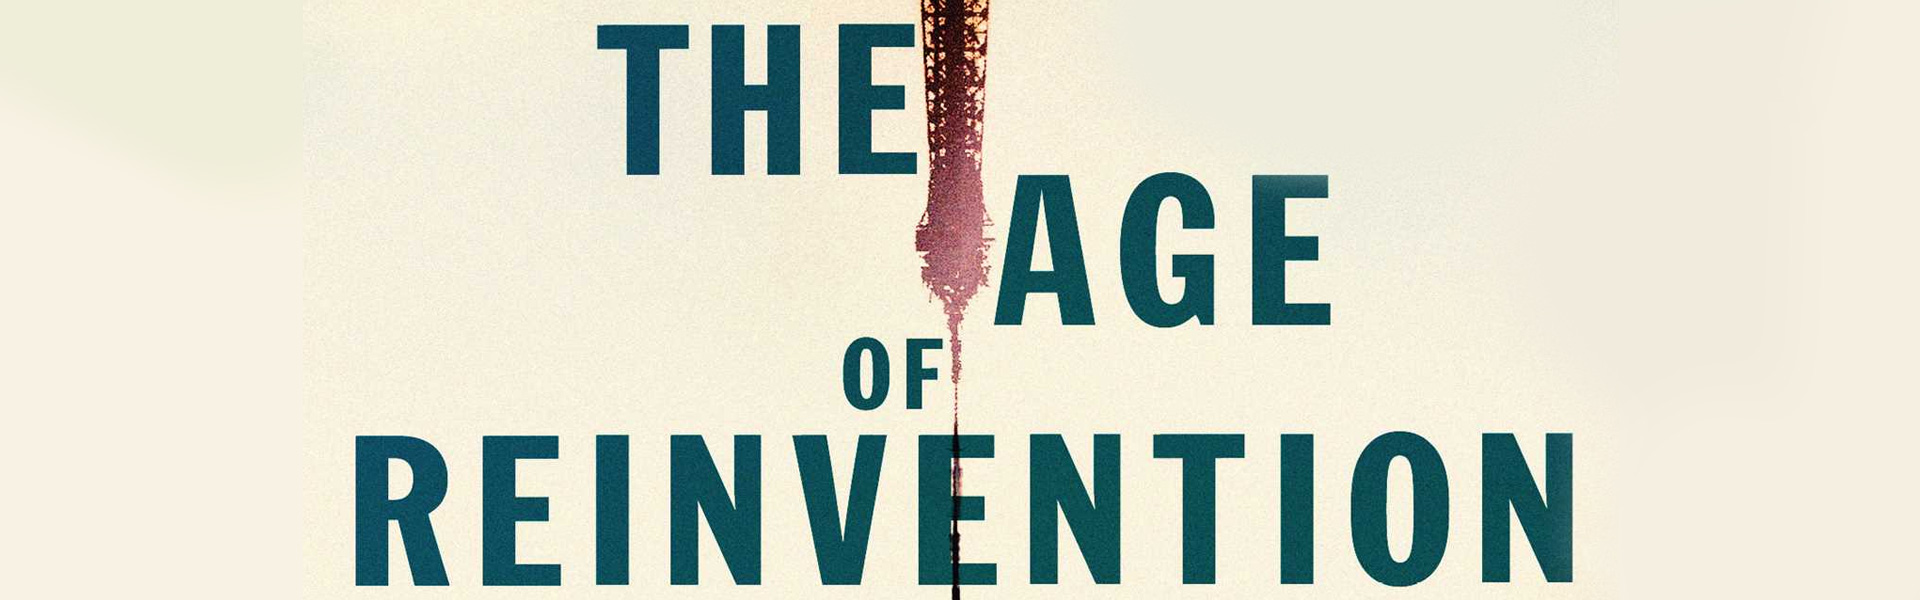 Fresh Talent: The Age of Reinvention by Karine Tuil